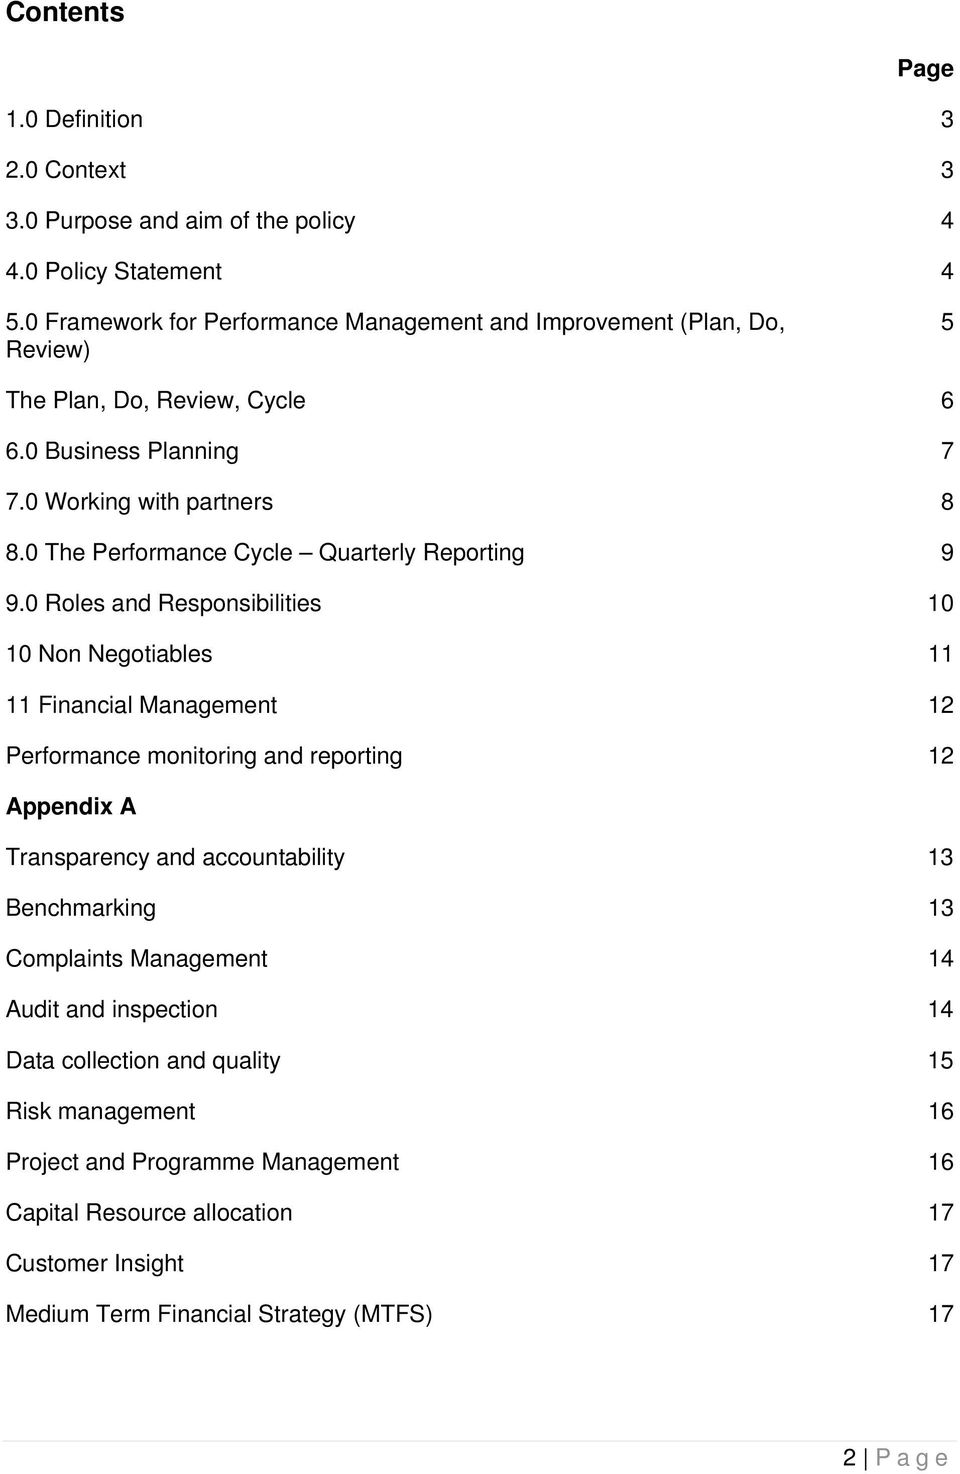 0 The Performance Cycle Quarterly Reporting 9 9.